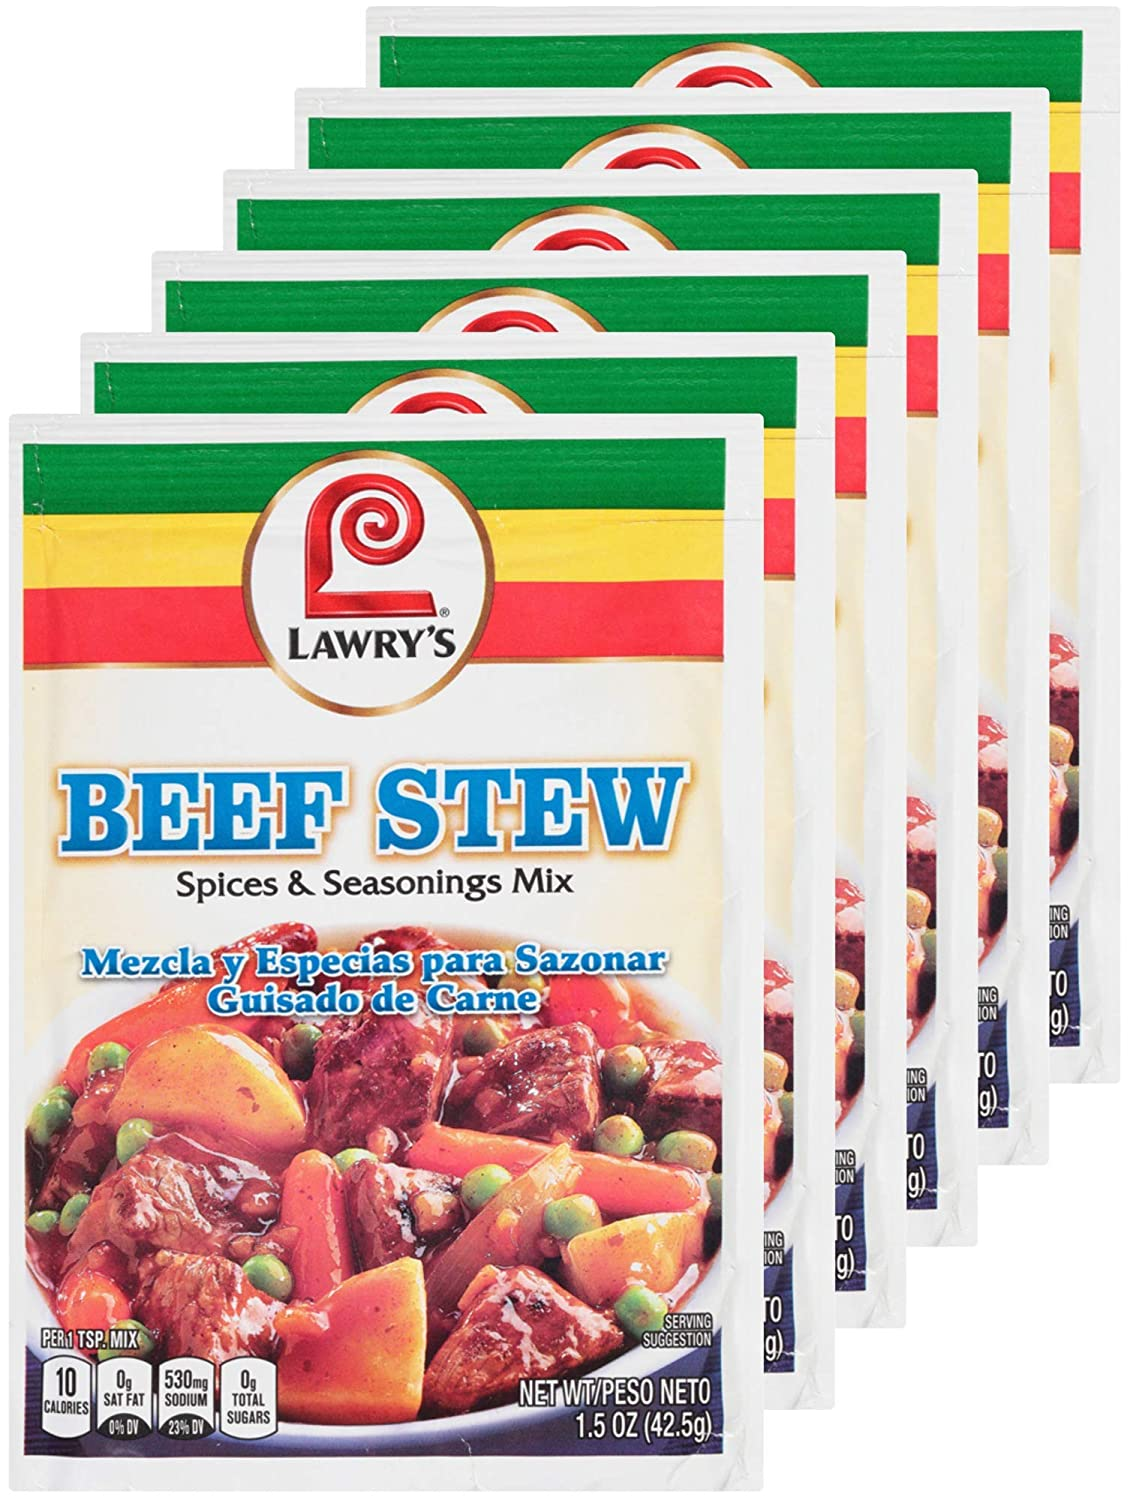 LAWRY'S Spices Seasonings Beef Stew of 6 1.5 OZ Max 64% OFF San Antonio Mall Pack